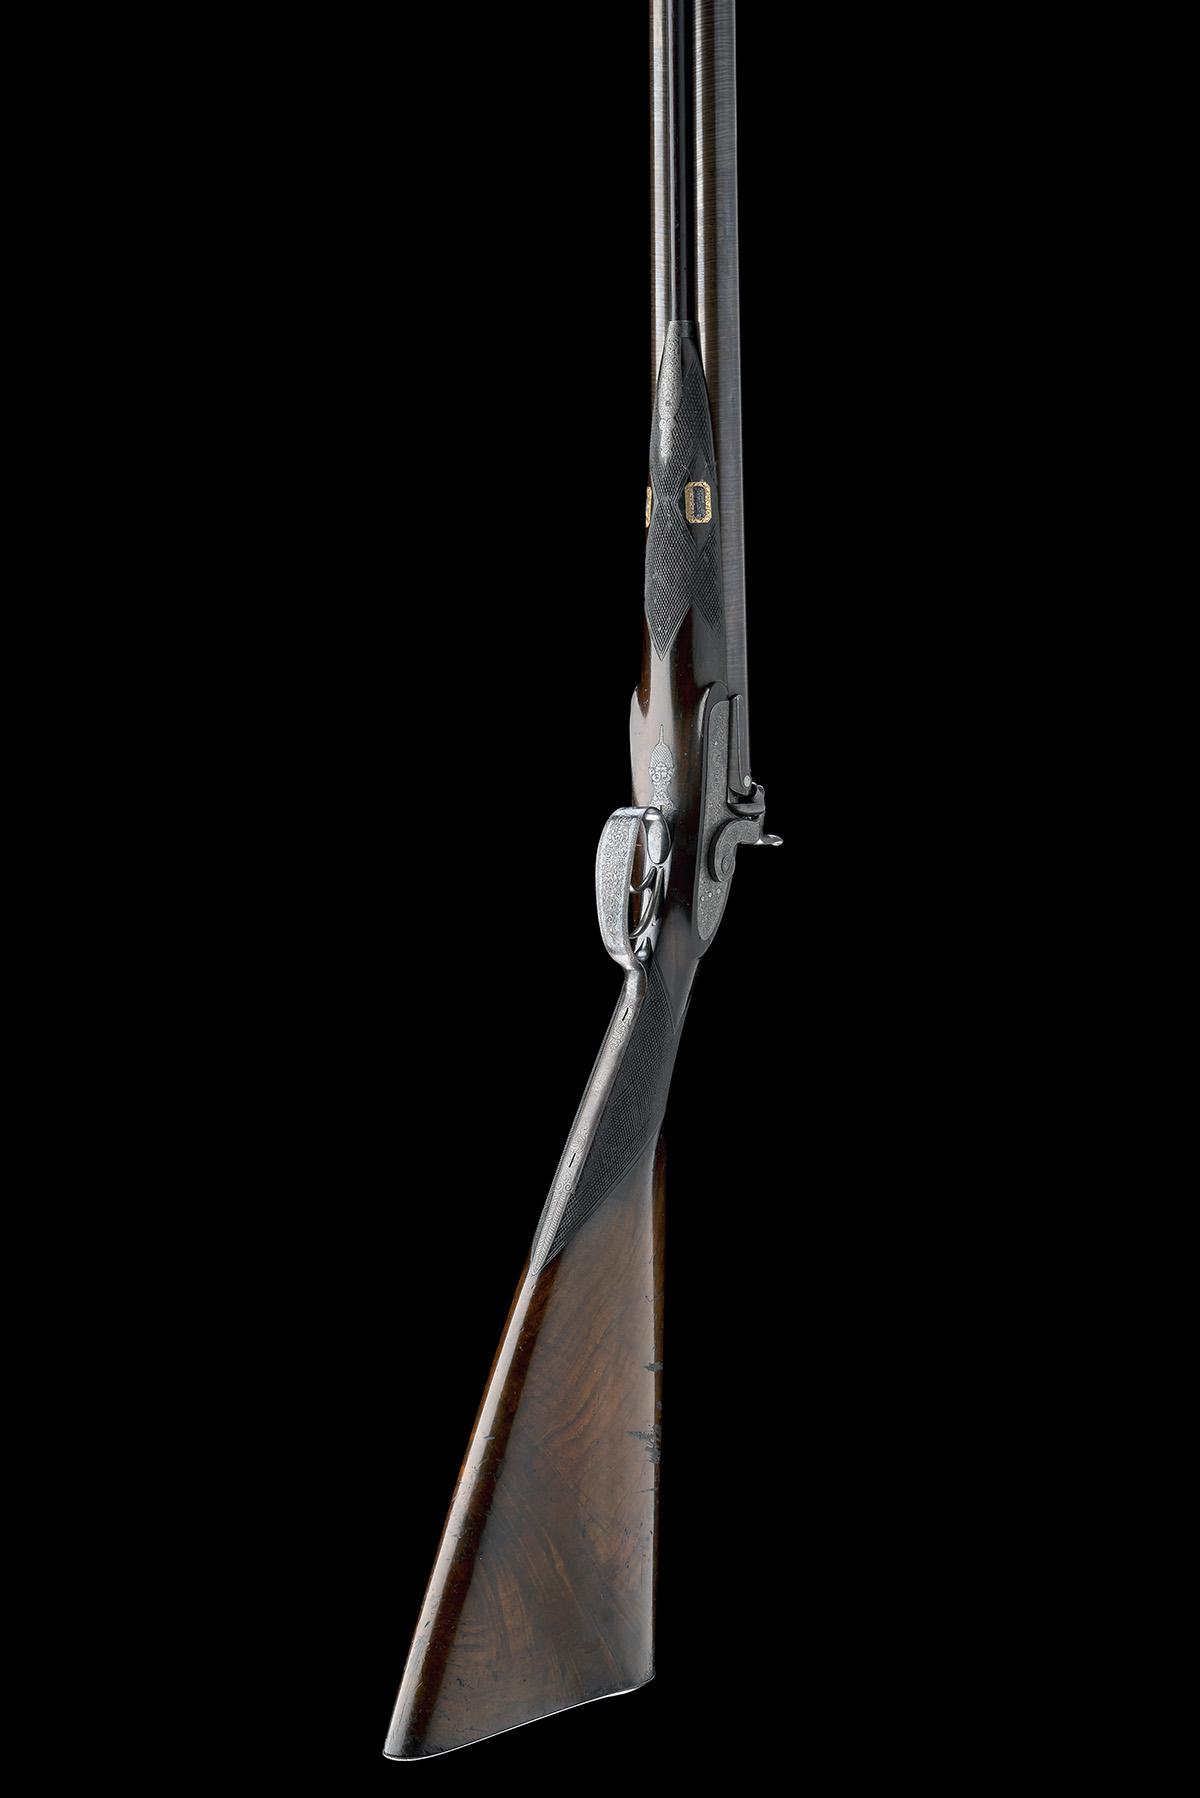 BECKWITH, LONDON A FINE CASED 15-BORE PERCUSSION DOUBLE-RIFLE FOR DANGEROUS GAME, serial no. 2747, - Image 7 of 14